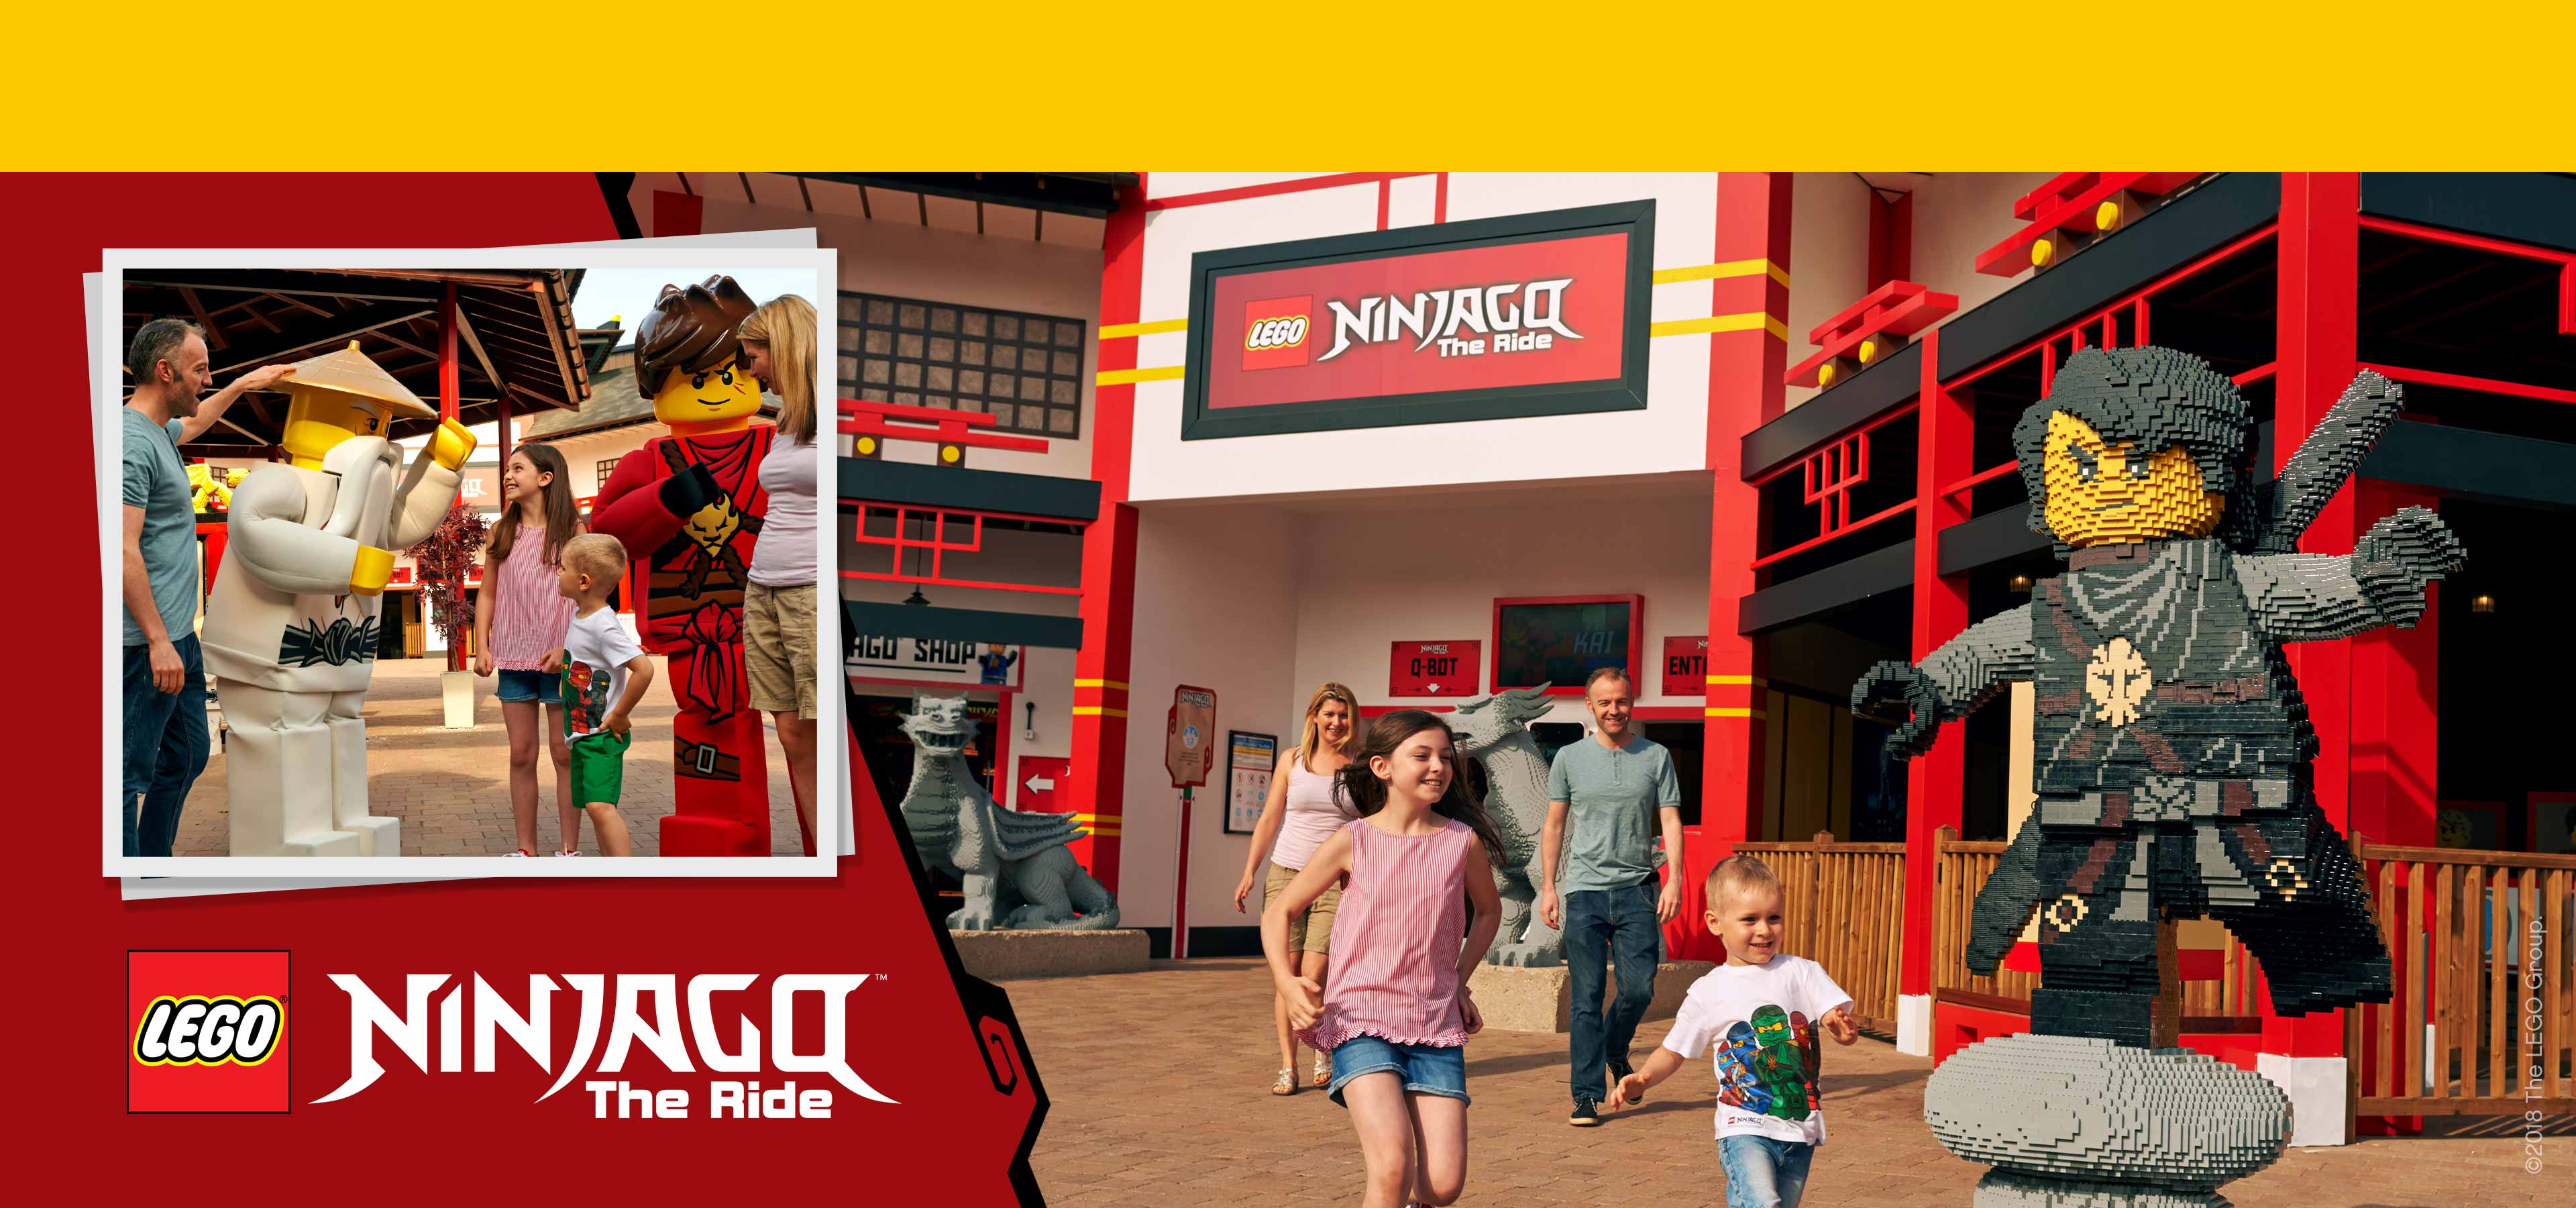 Ninjago the ride at LegoLand